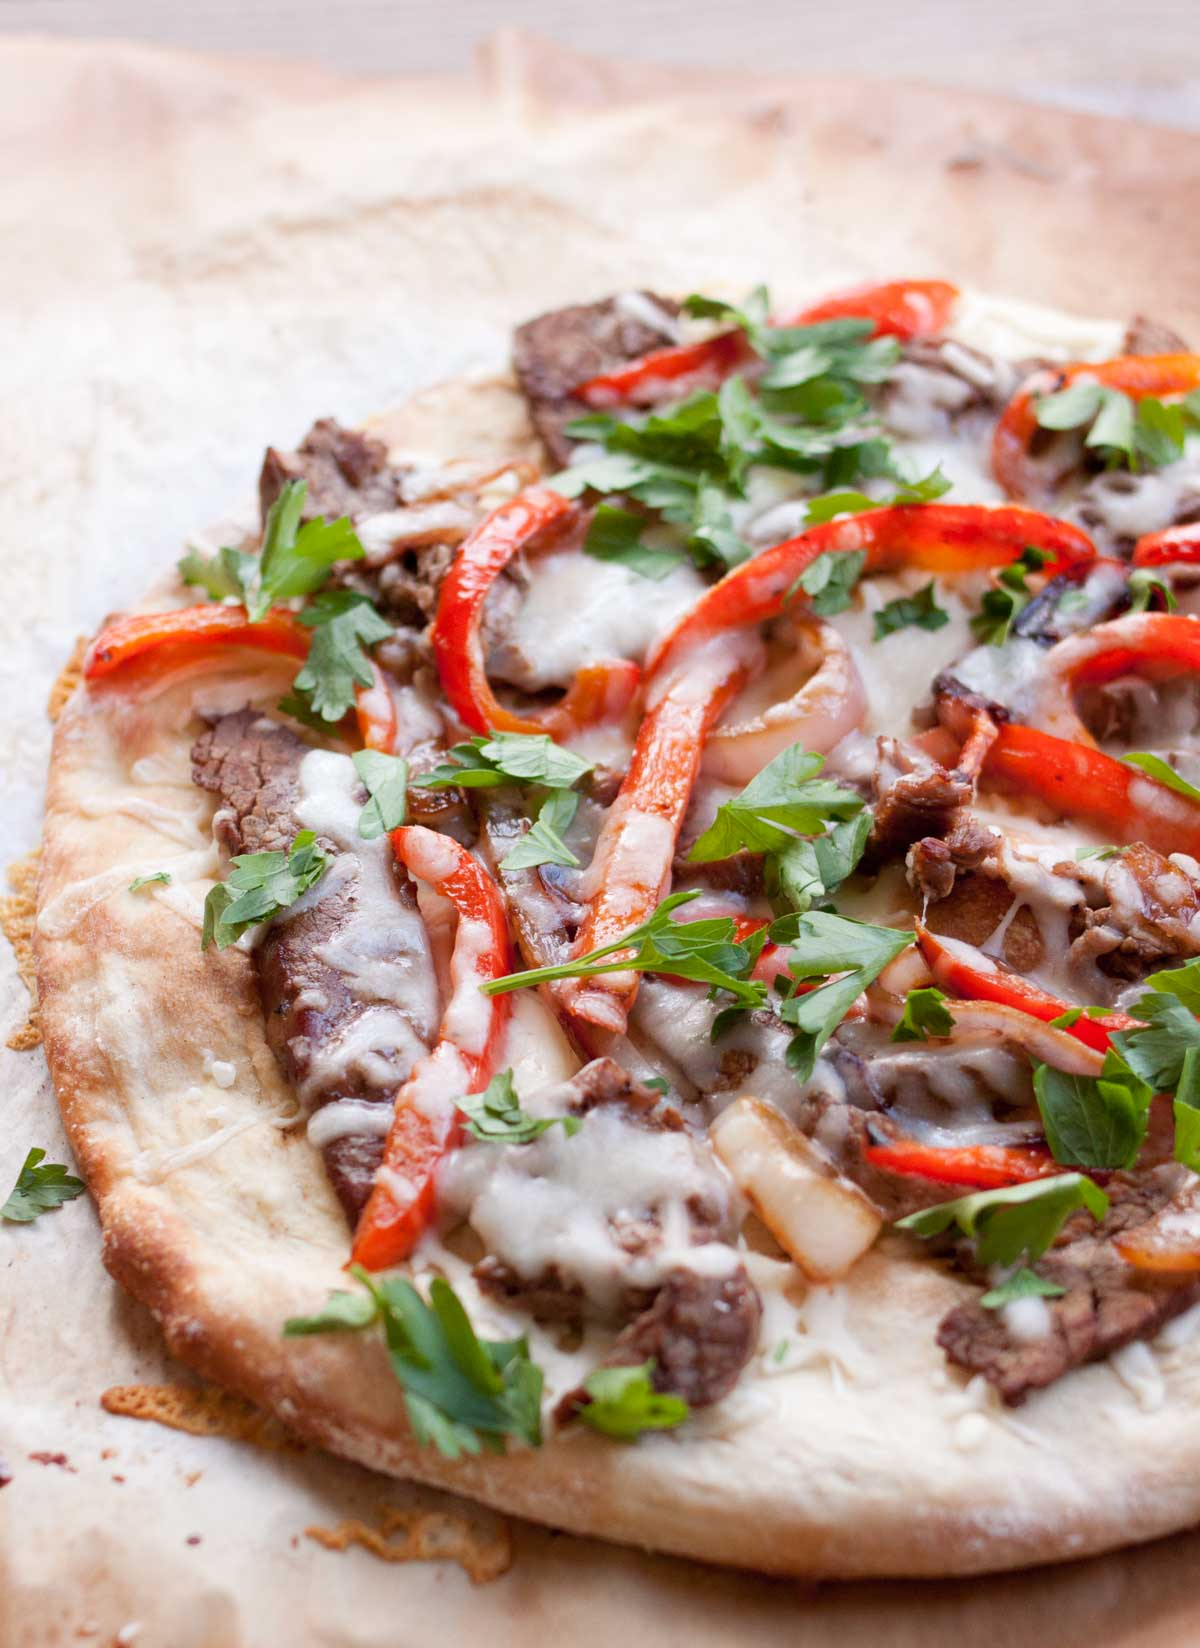 A flatbread pizza with strips of steak and red peppers is covered in melted cheese and fresh parsley.